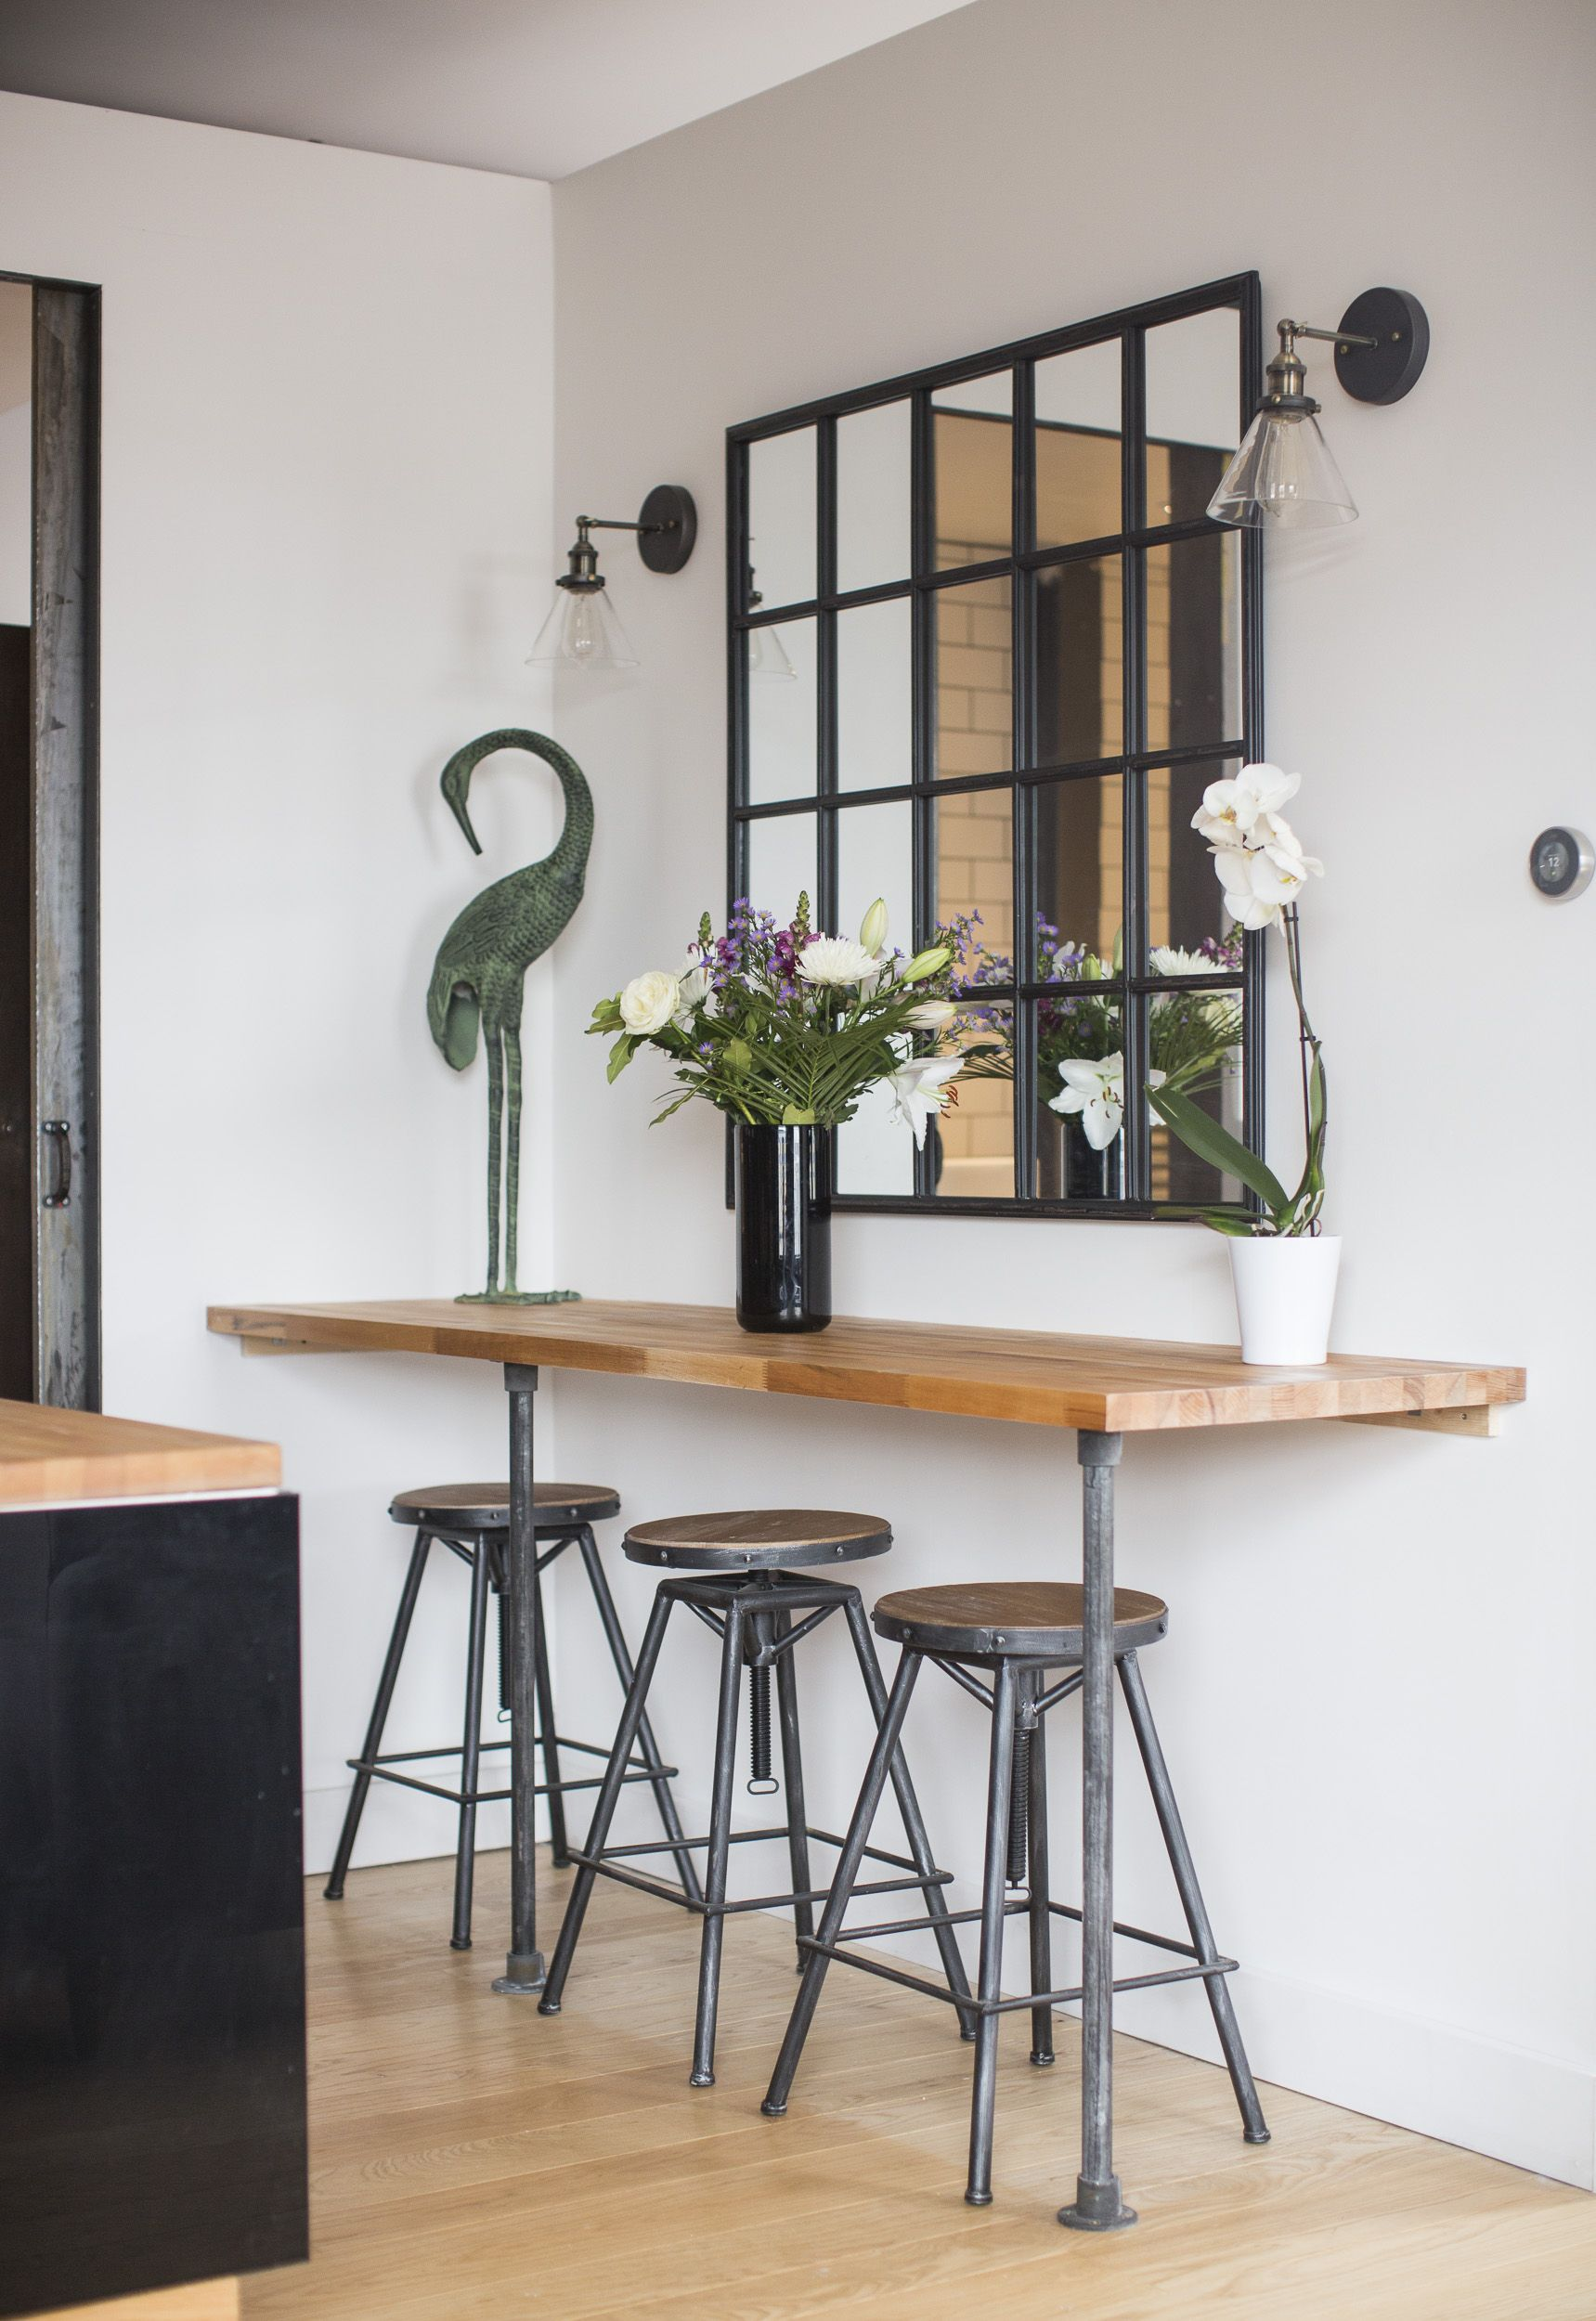 Vintage Industrial Breakfast Bar At The River Loft With Old